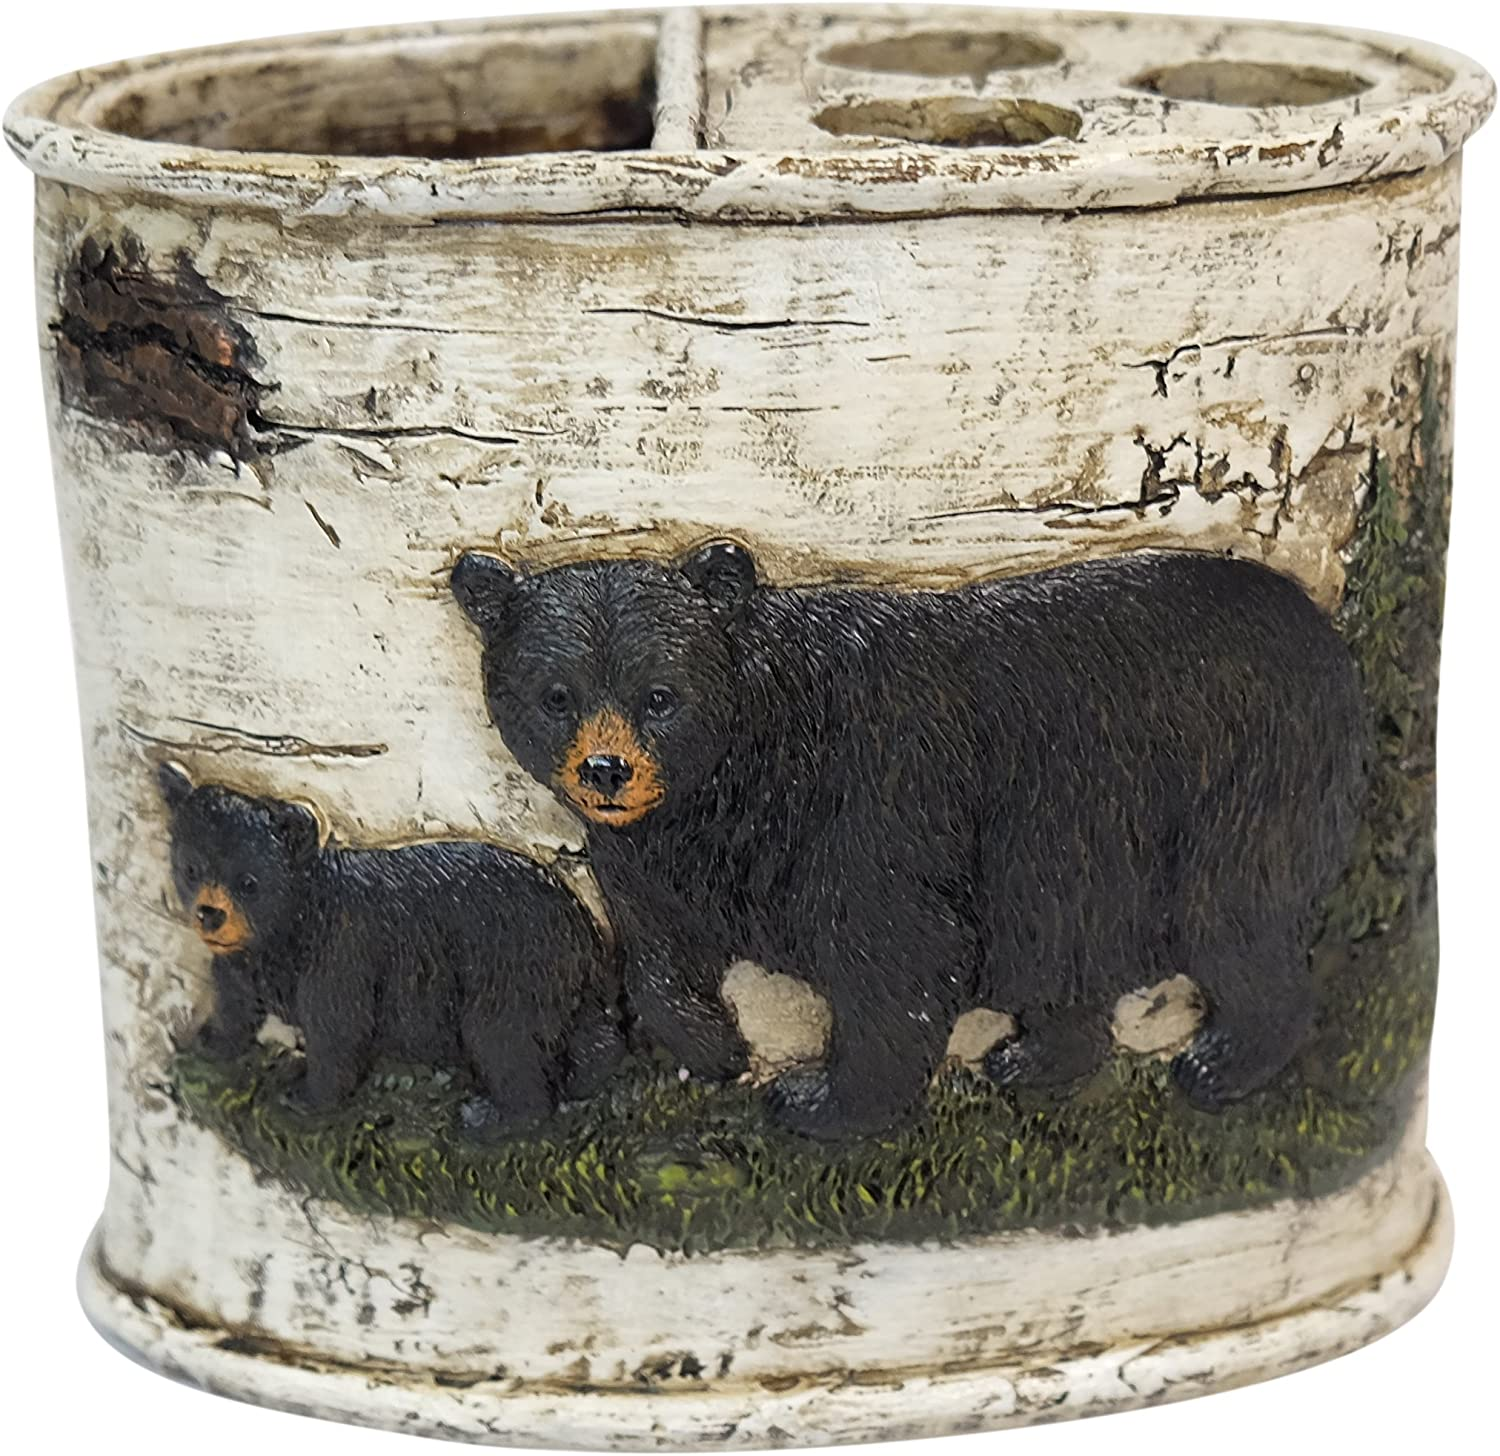 Toothbrush and Toothpaste Holder Ebros Black Bear in Pine Trees Bathroom Decor